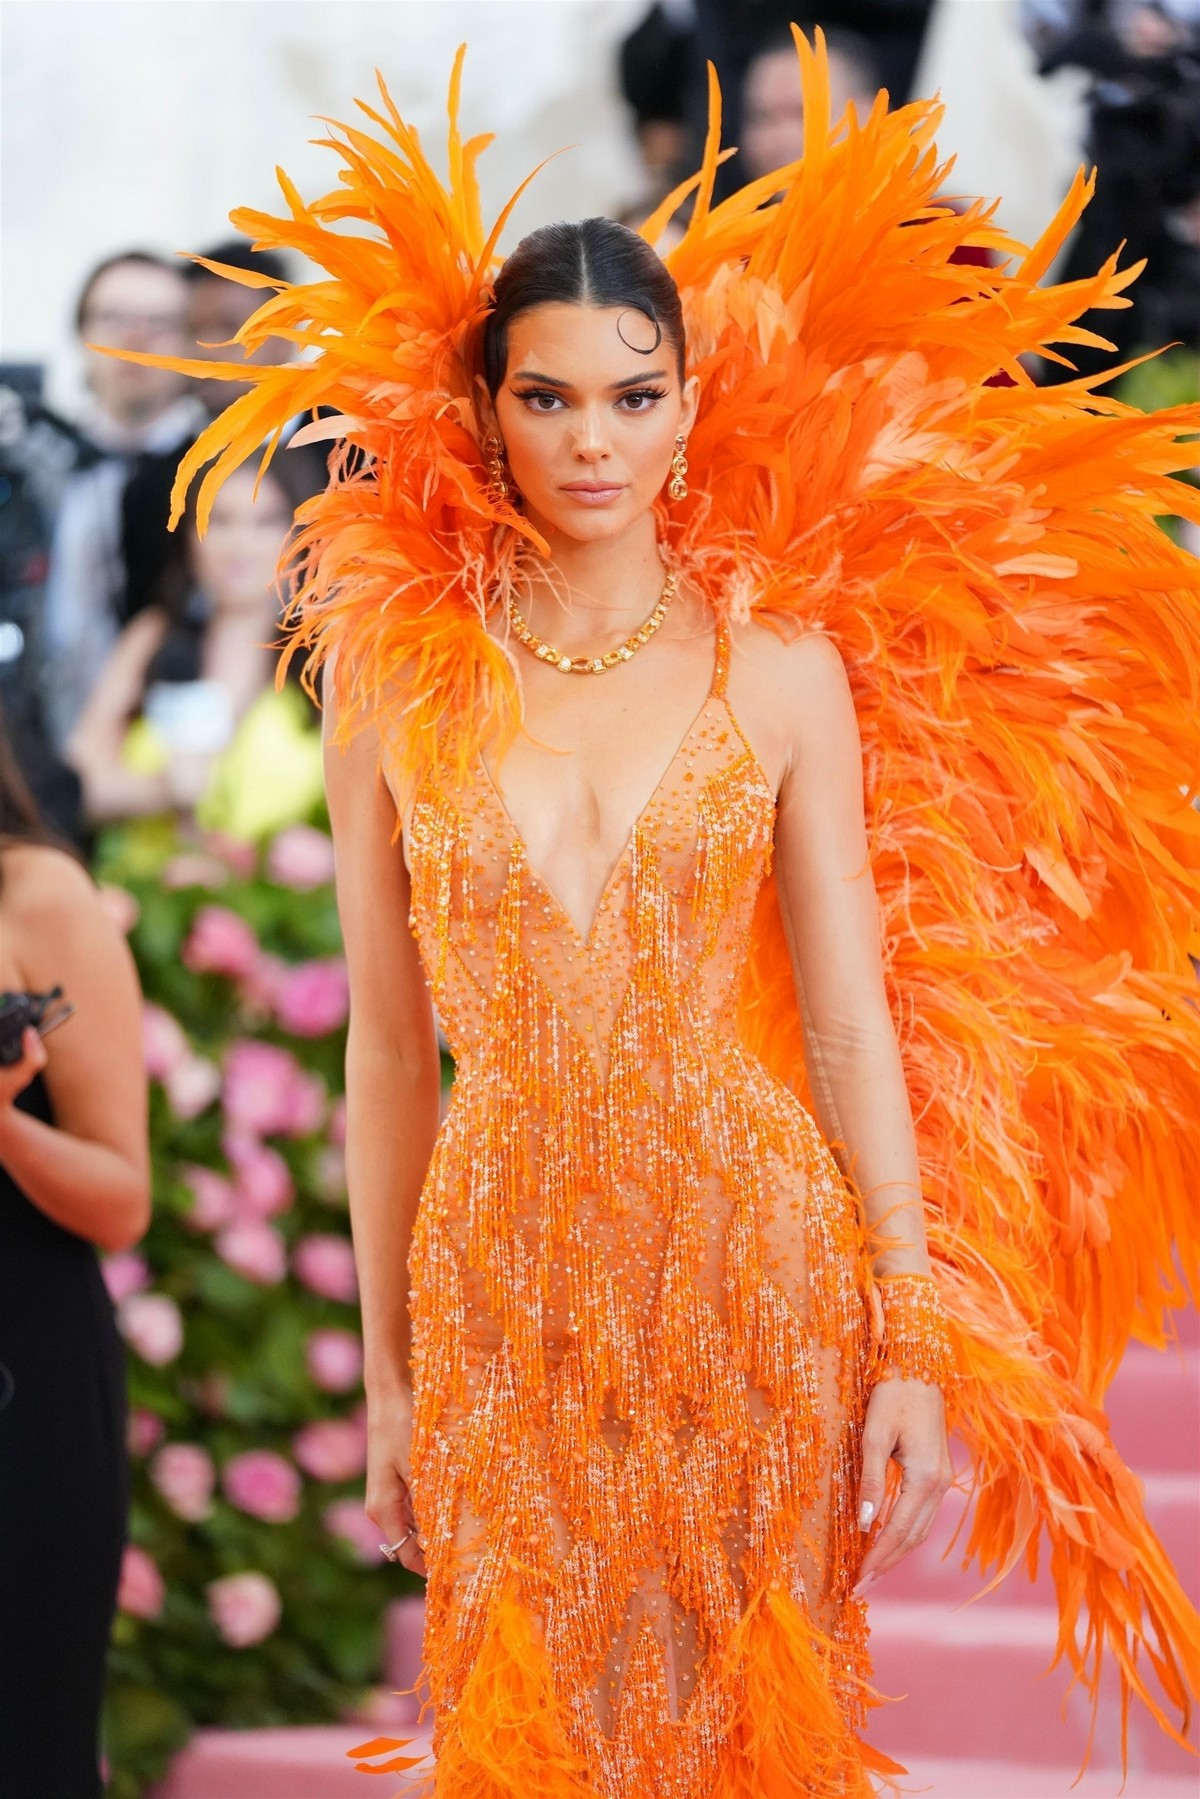 kendall-jenner-at-2019-met-gala-celebrating-camp-notes-on-fashion-in-new-york-2019-05-06-04.jpg